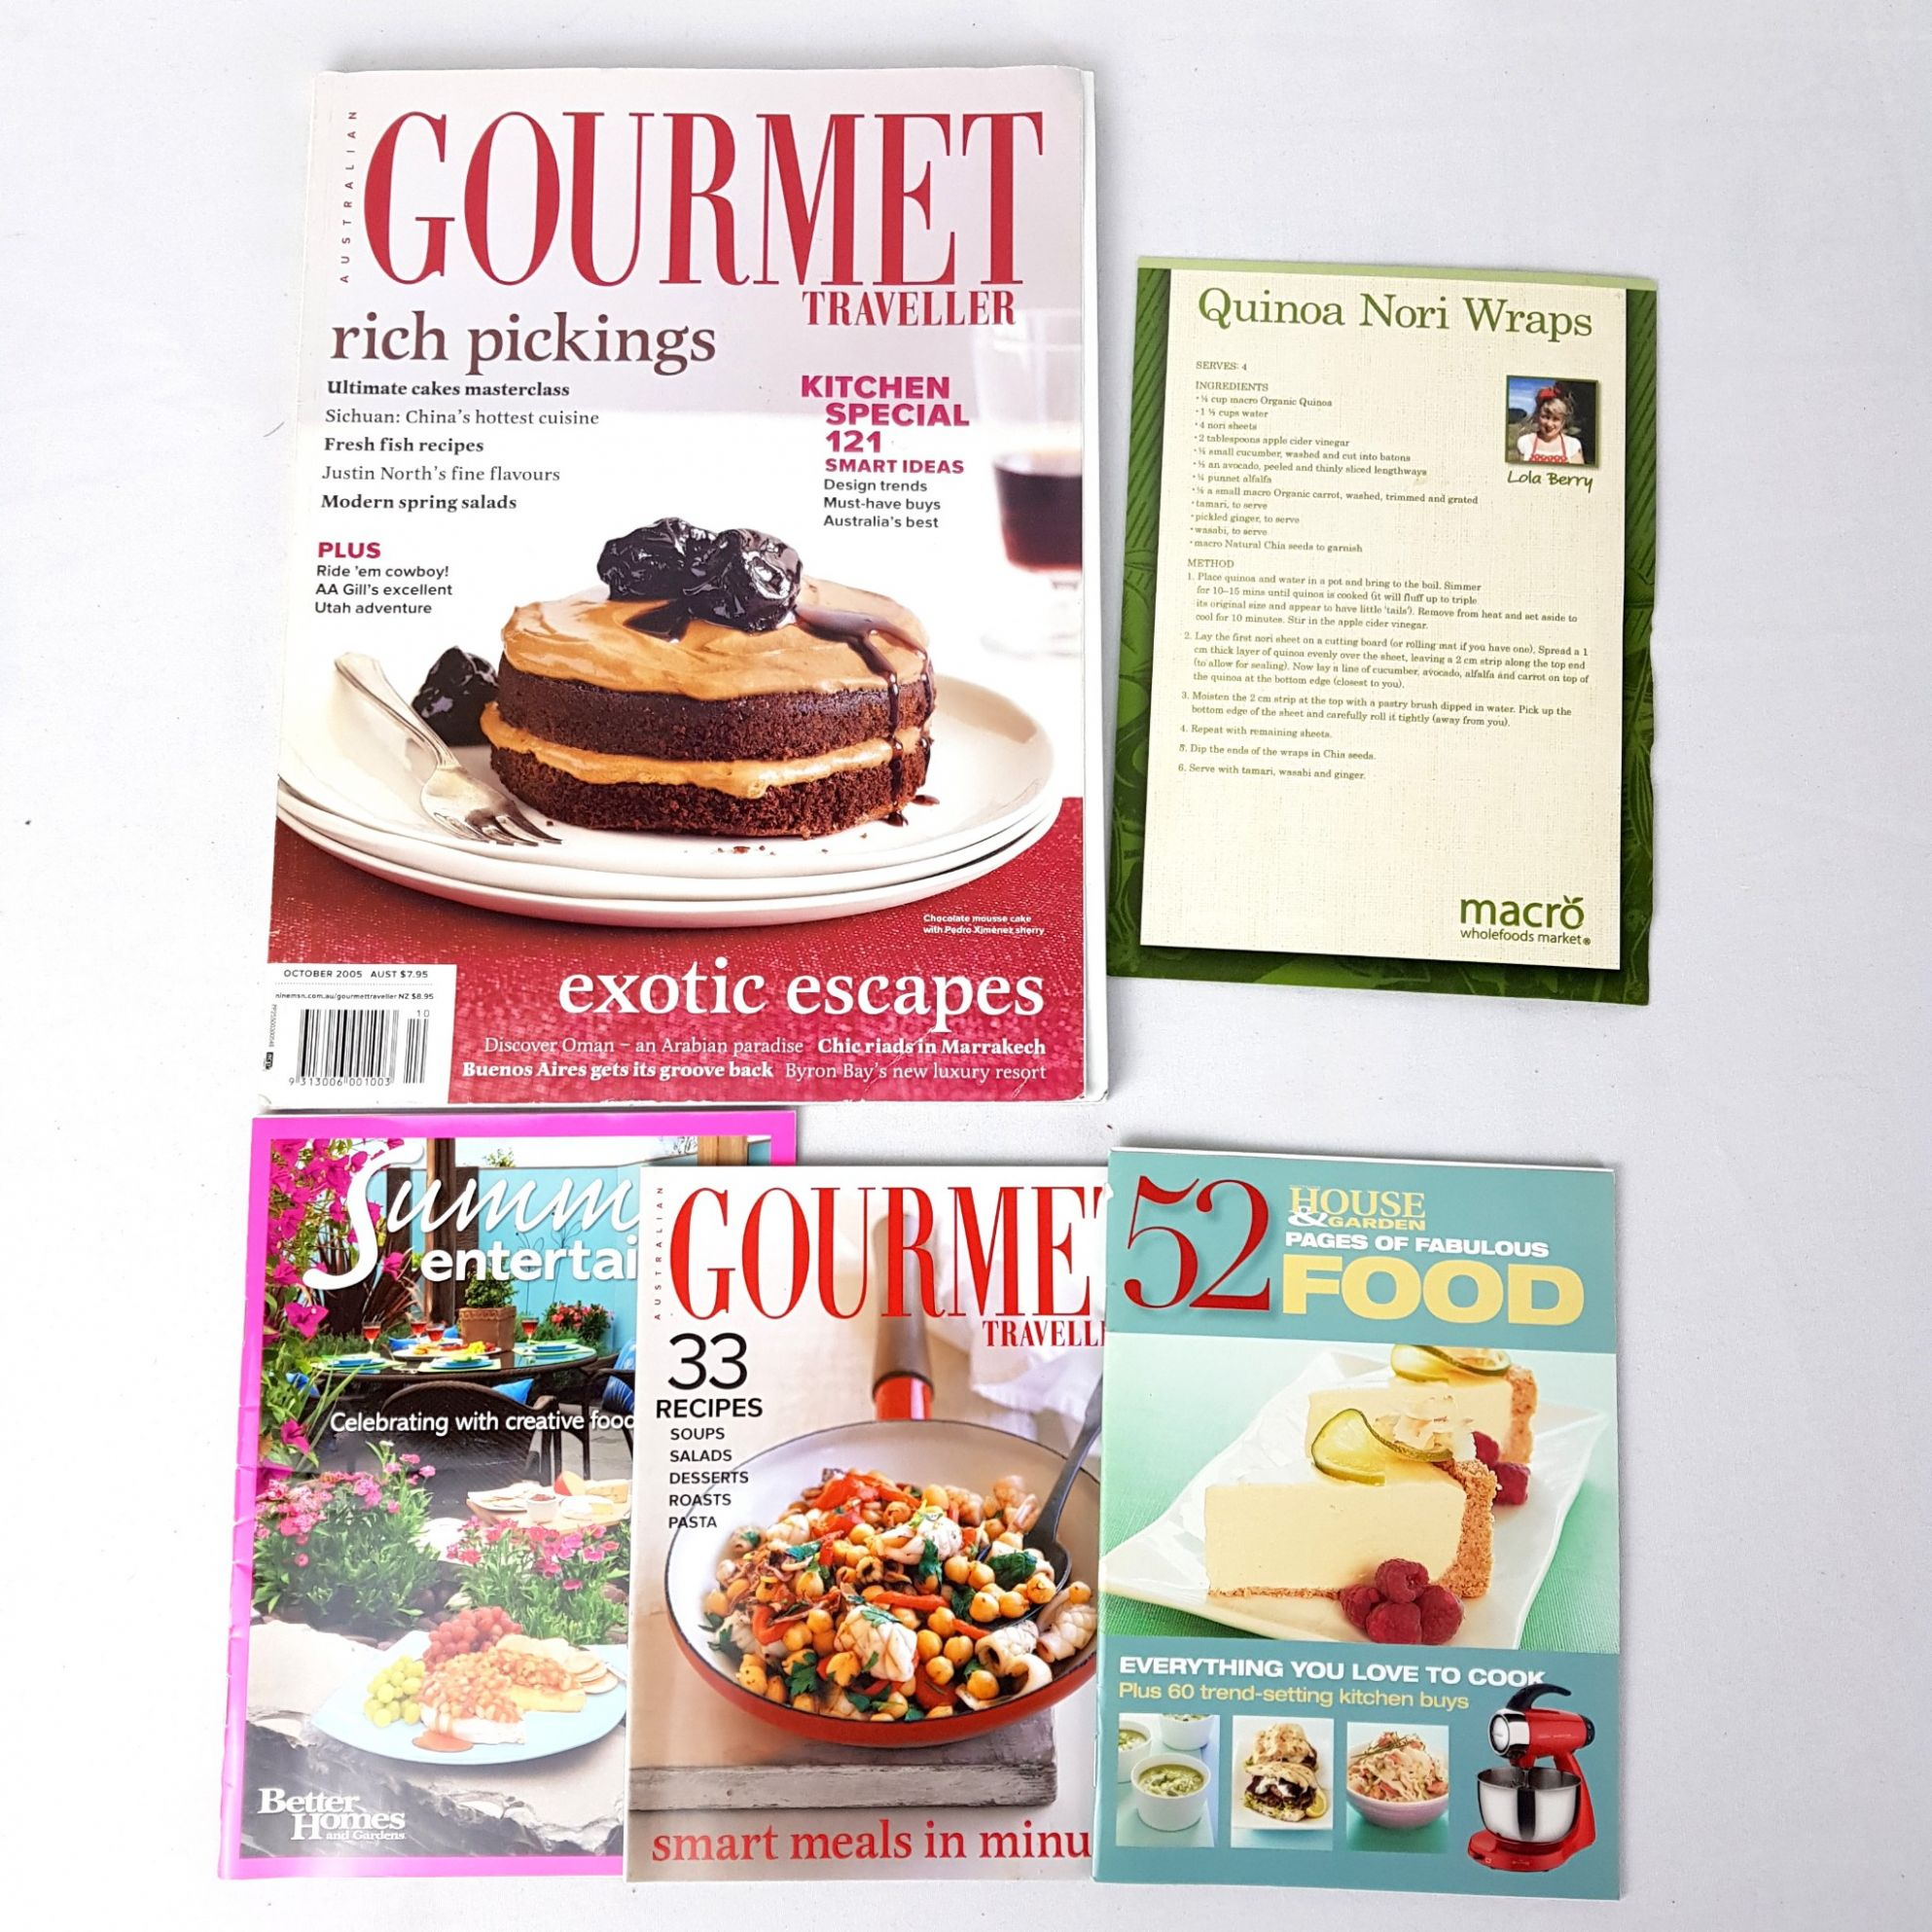 Details about 11x Cooking Baking Desserts Gourmet Traveller Australia  Magazine Recipe Book Card - Dessert Recipes Gourmet Traveller